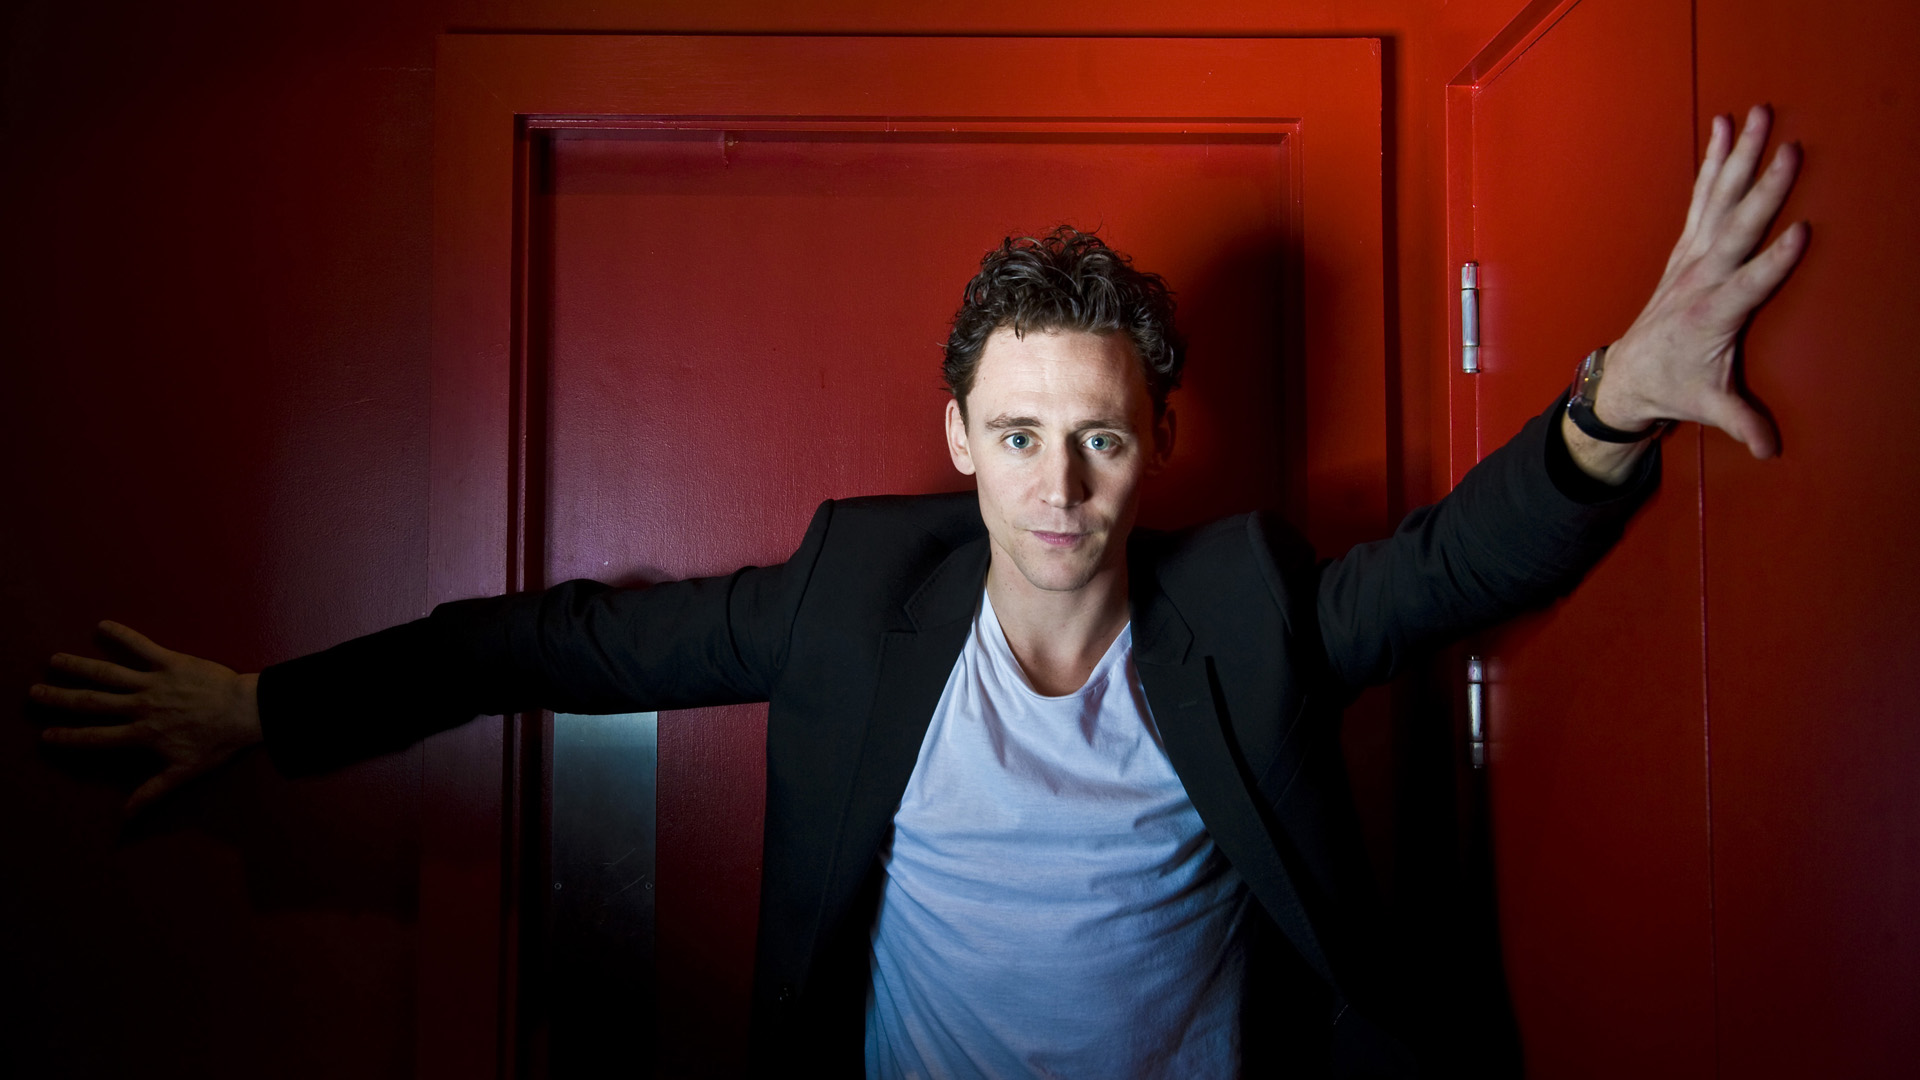 HD Tom Hiddleston Wallpapers HdCoolWallpapersCom 1920x1080